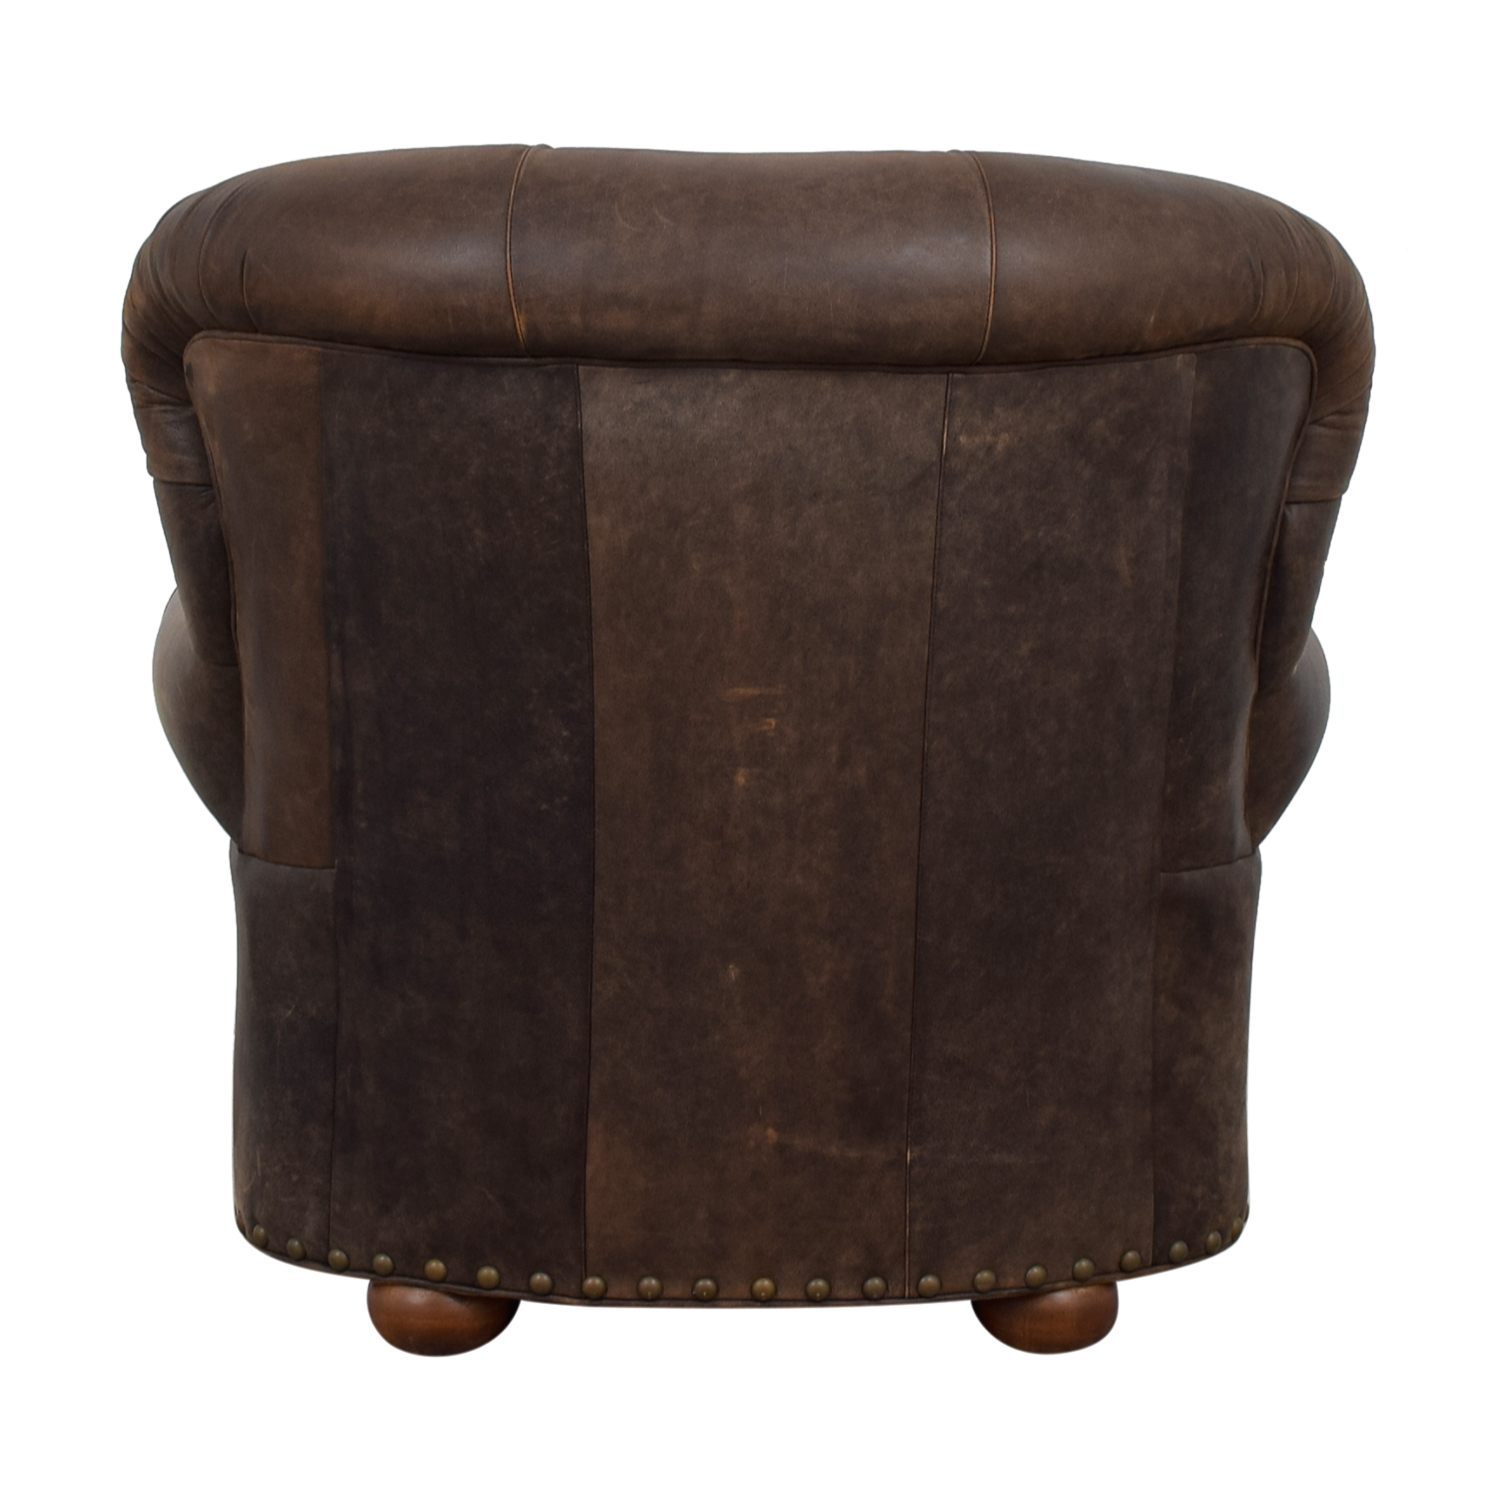 Restoration Hardware Restoration Hardware Churchill  Brown Leather Tufted Nailhead Chair coupon